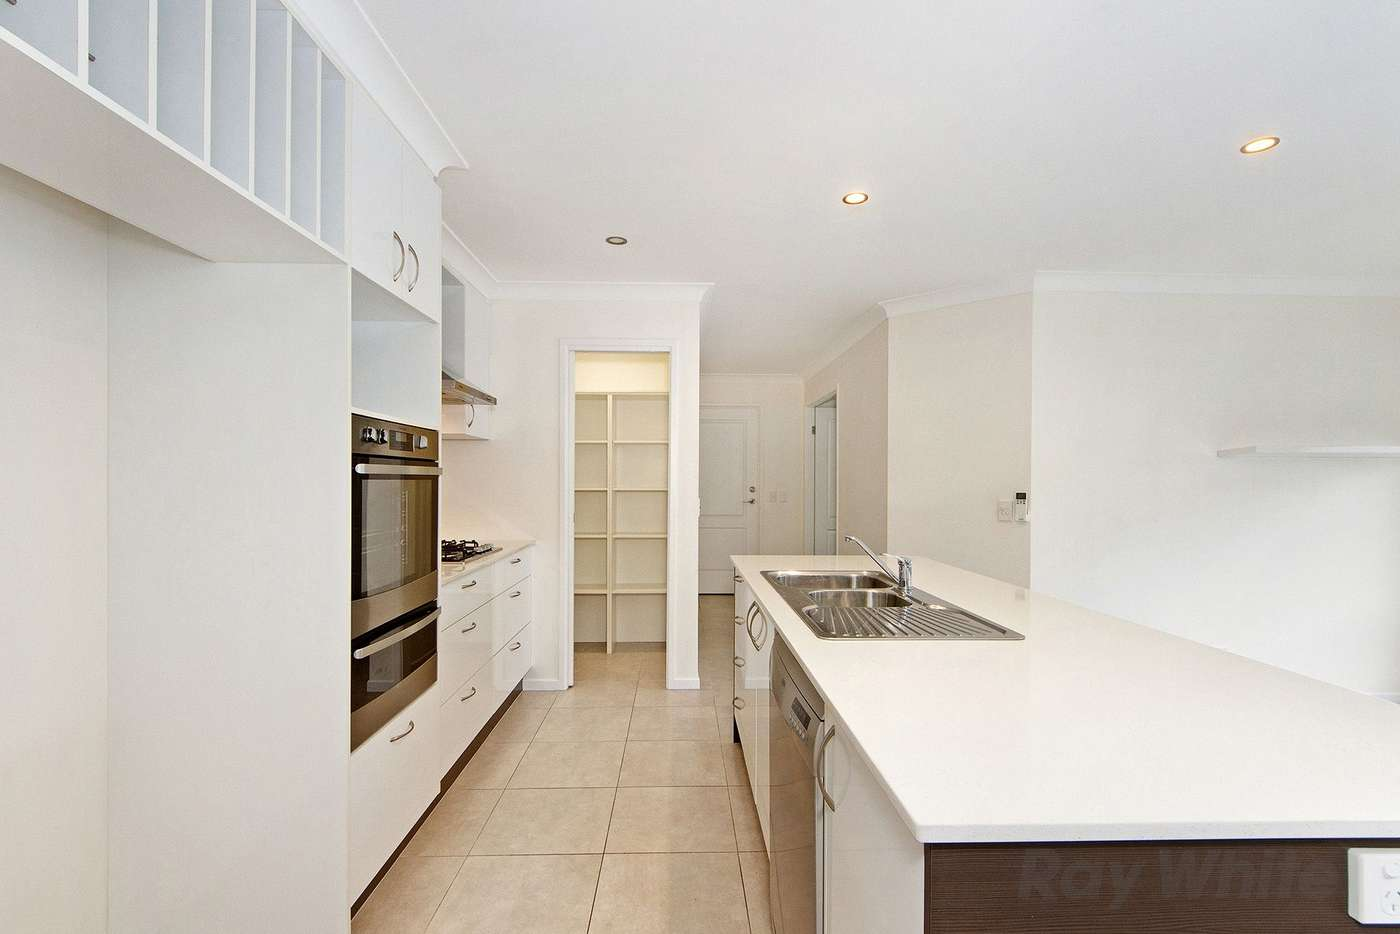 Sixth view of Homely house listing, 8 Summerhill Crescent, Ormeau Hills QLD 4208